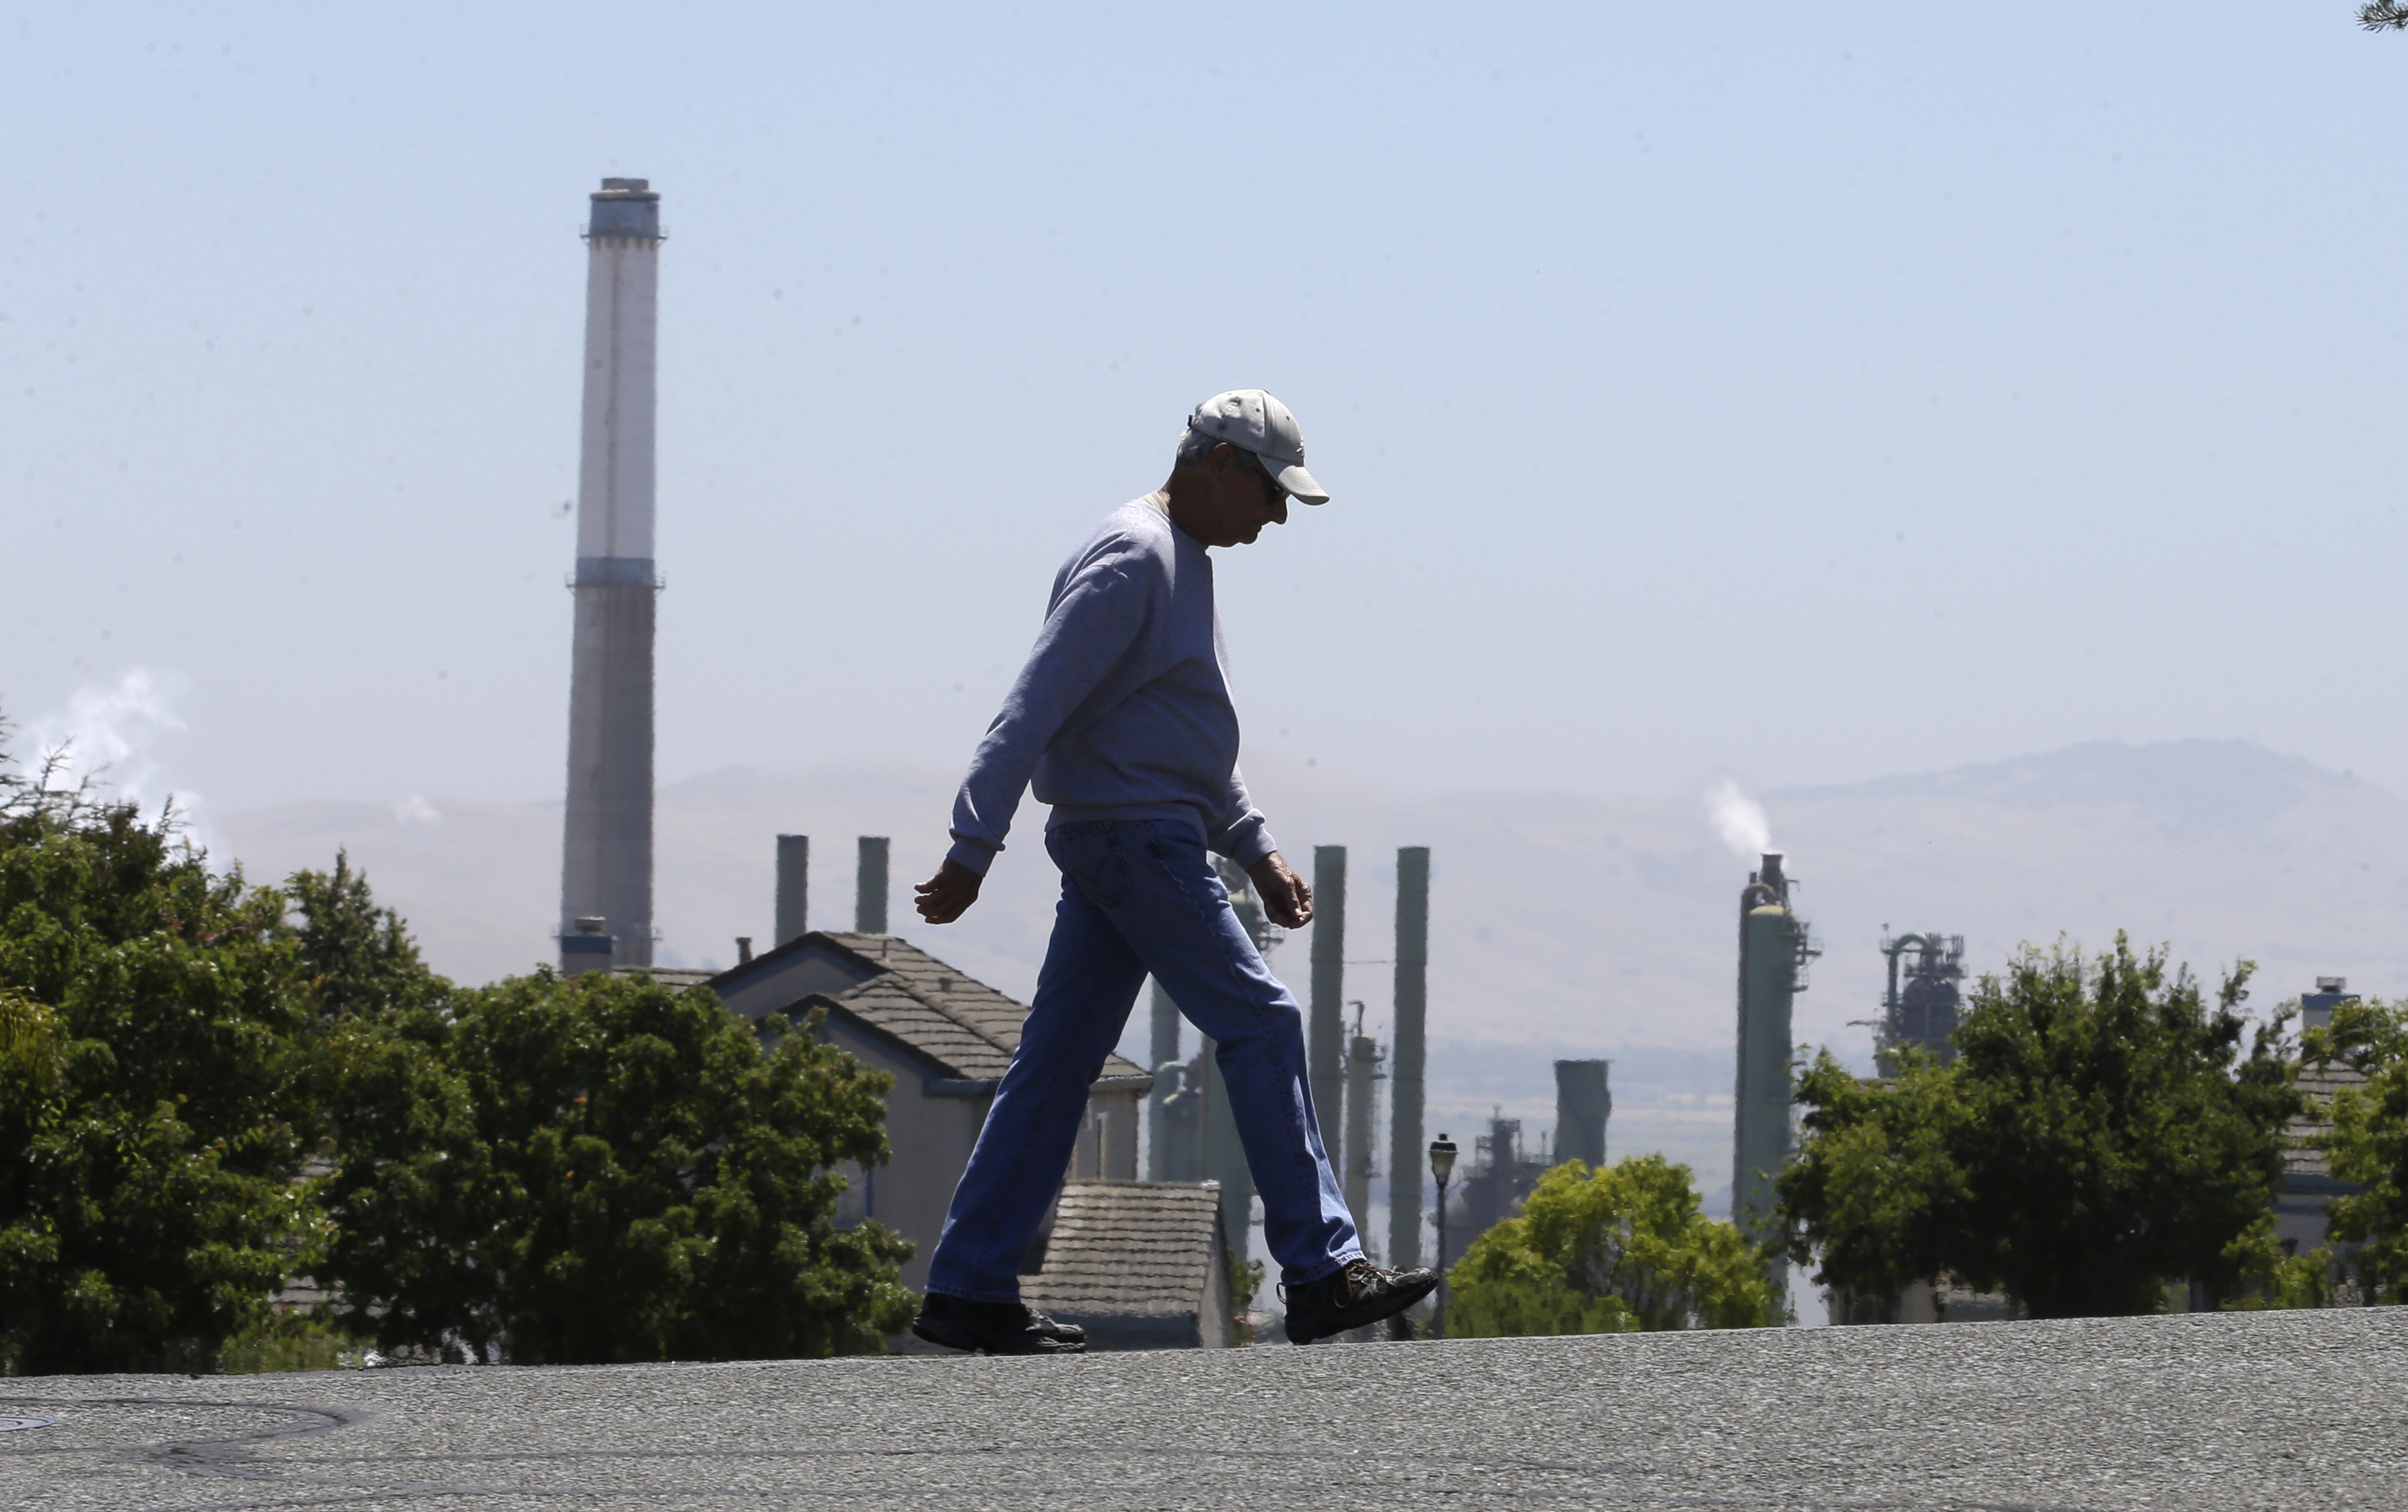 California Climate Change Q and A The stacks from the Valero Benicia Refinery are seen as a pedestrian walks in a nearby neighborhood, Wednesday, July 12, 2017, in Benicia, Calif. California Gov. Jerry Brown is racing to convince state lawmakers to extend California's cap-and-trade program which puts a price on carbon emitted by polluters, including oil refineries. The program has been closely watched around the world as a market-based way to reduce greenhouse gas emissions, but it expires in 2020. (AP Photo/Rich Pedroncelli)